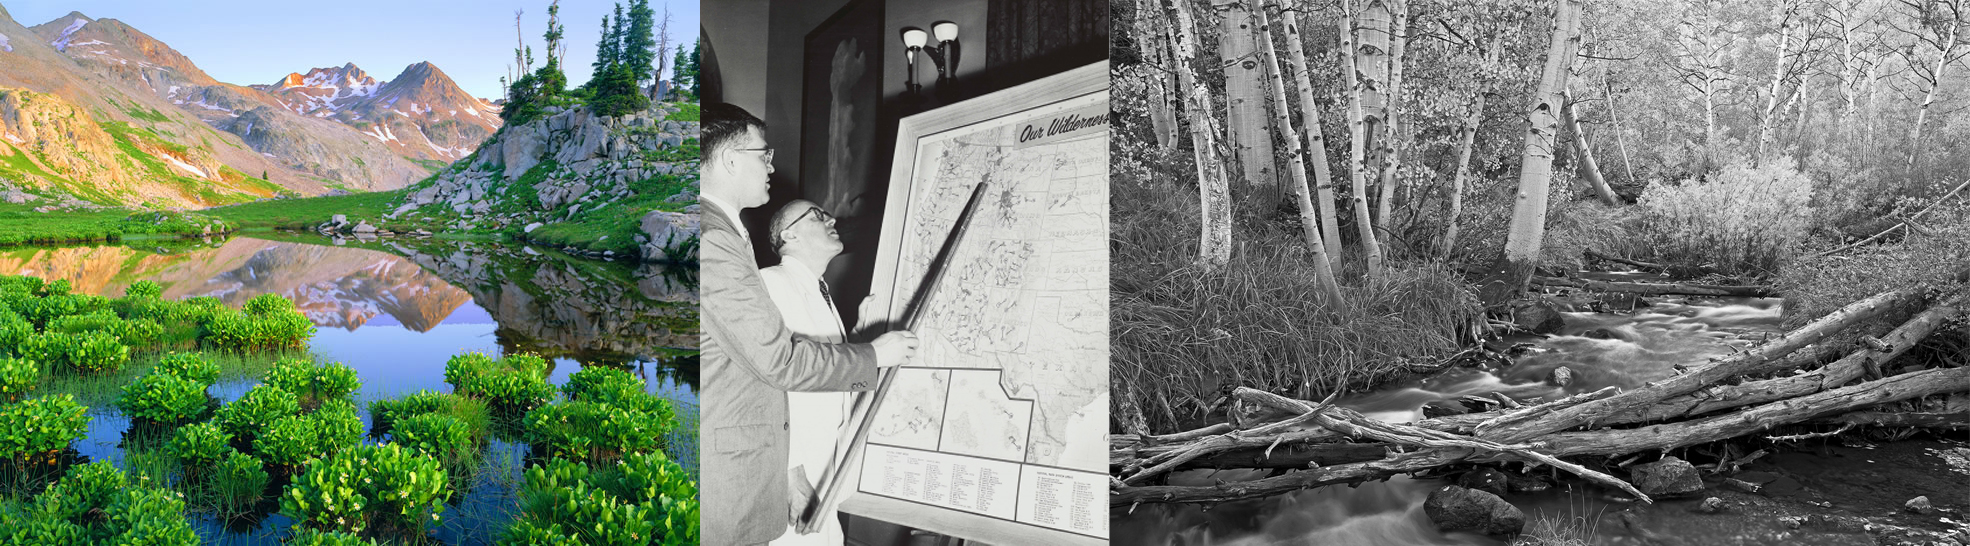 Chester County Historical Society Brandywine Valley, Check out the Legacy of Wilderness Exhibit at the University of ...